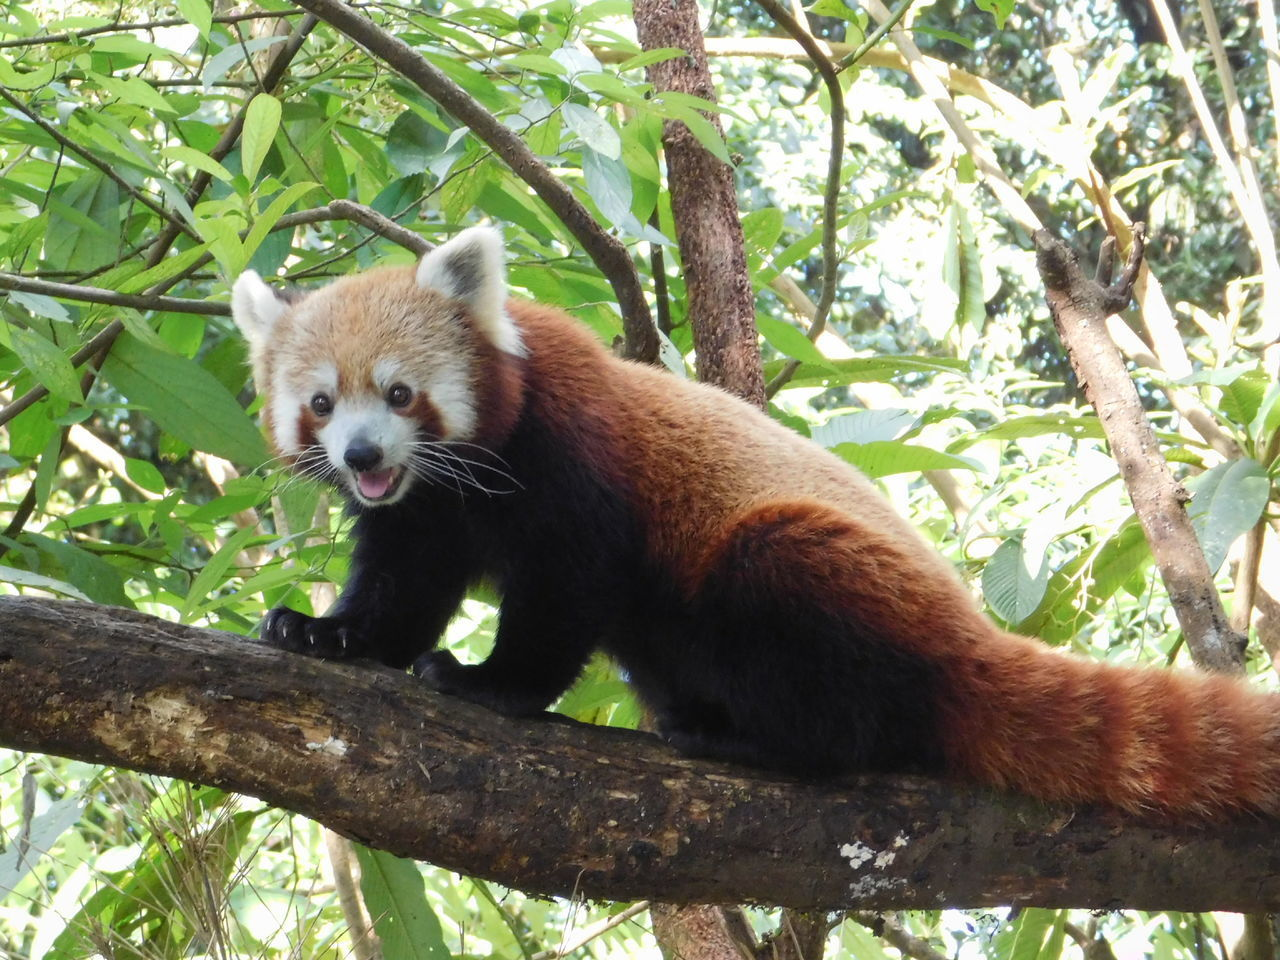 tree, animal wildlife, animal themes, one animal, red panda, animal, animals in the wild, plant, branch, mammal, panda - animal, nature, vertebrate, no people, day, looking away, focus on foreground, outdoors, looking, forest, whisker